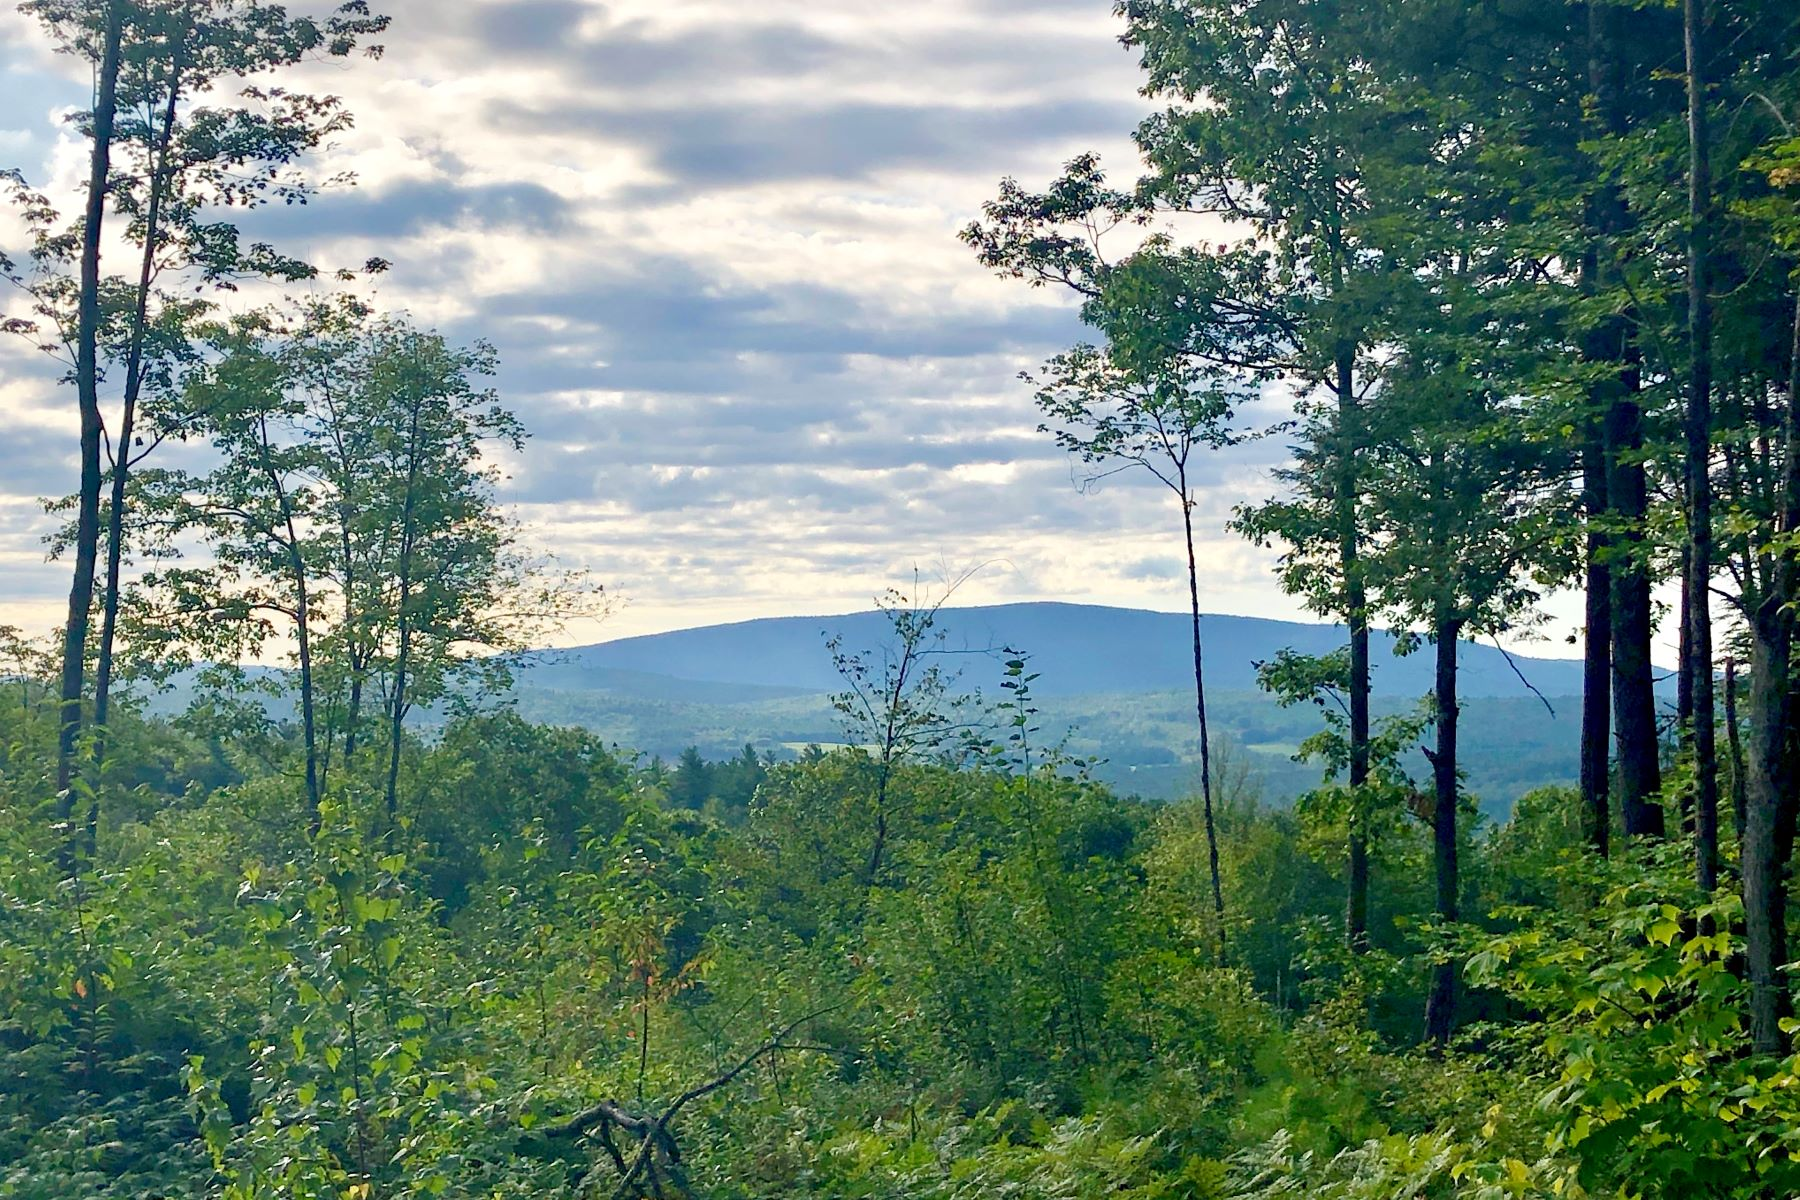 Land for Sale at 15 Acre Lot with Views in Bradford 0 Fairground Road Bradford, Vermont 05033 United States